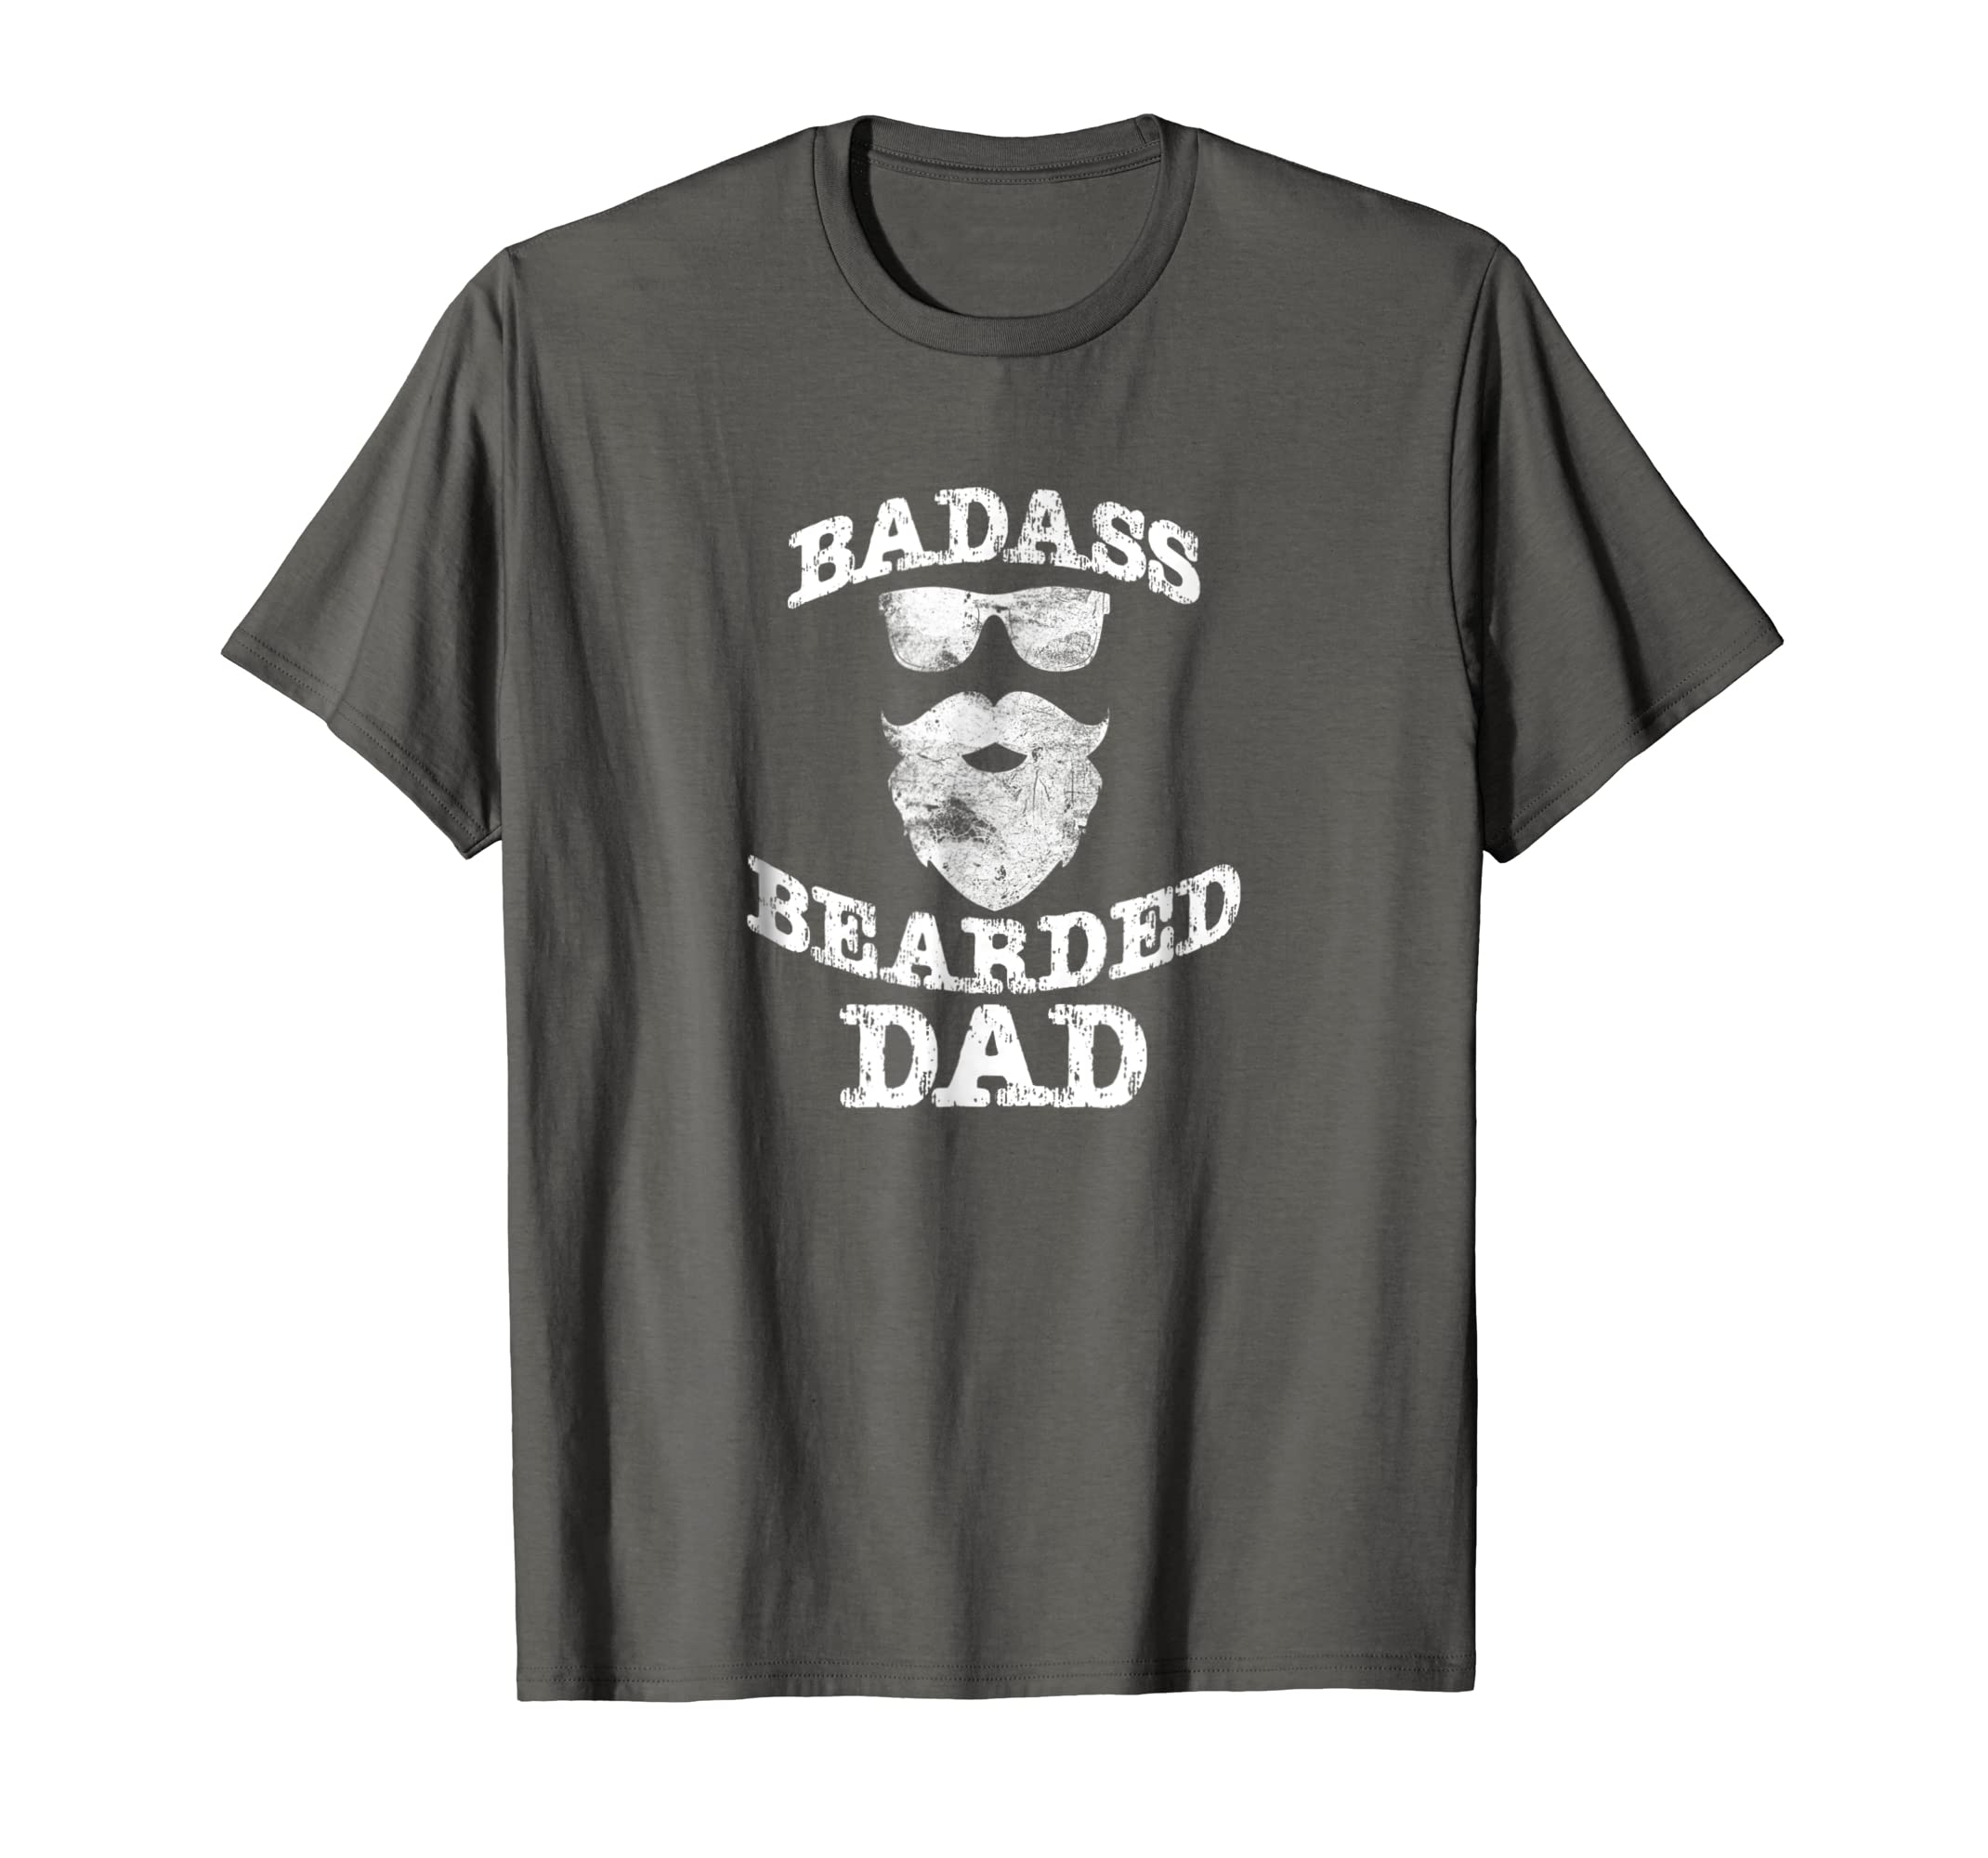 96088dad6 Amazon.com: Mens Badass Bearded Dad Funny Father/Grandfather Gift Shirt:  Clothing